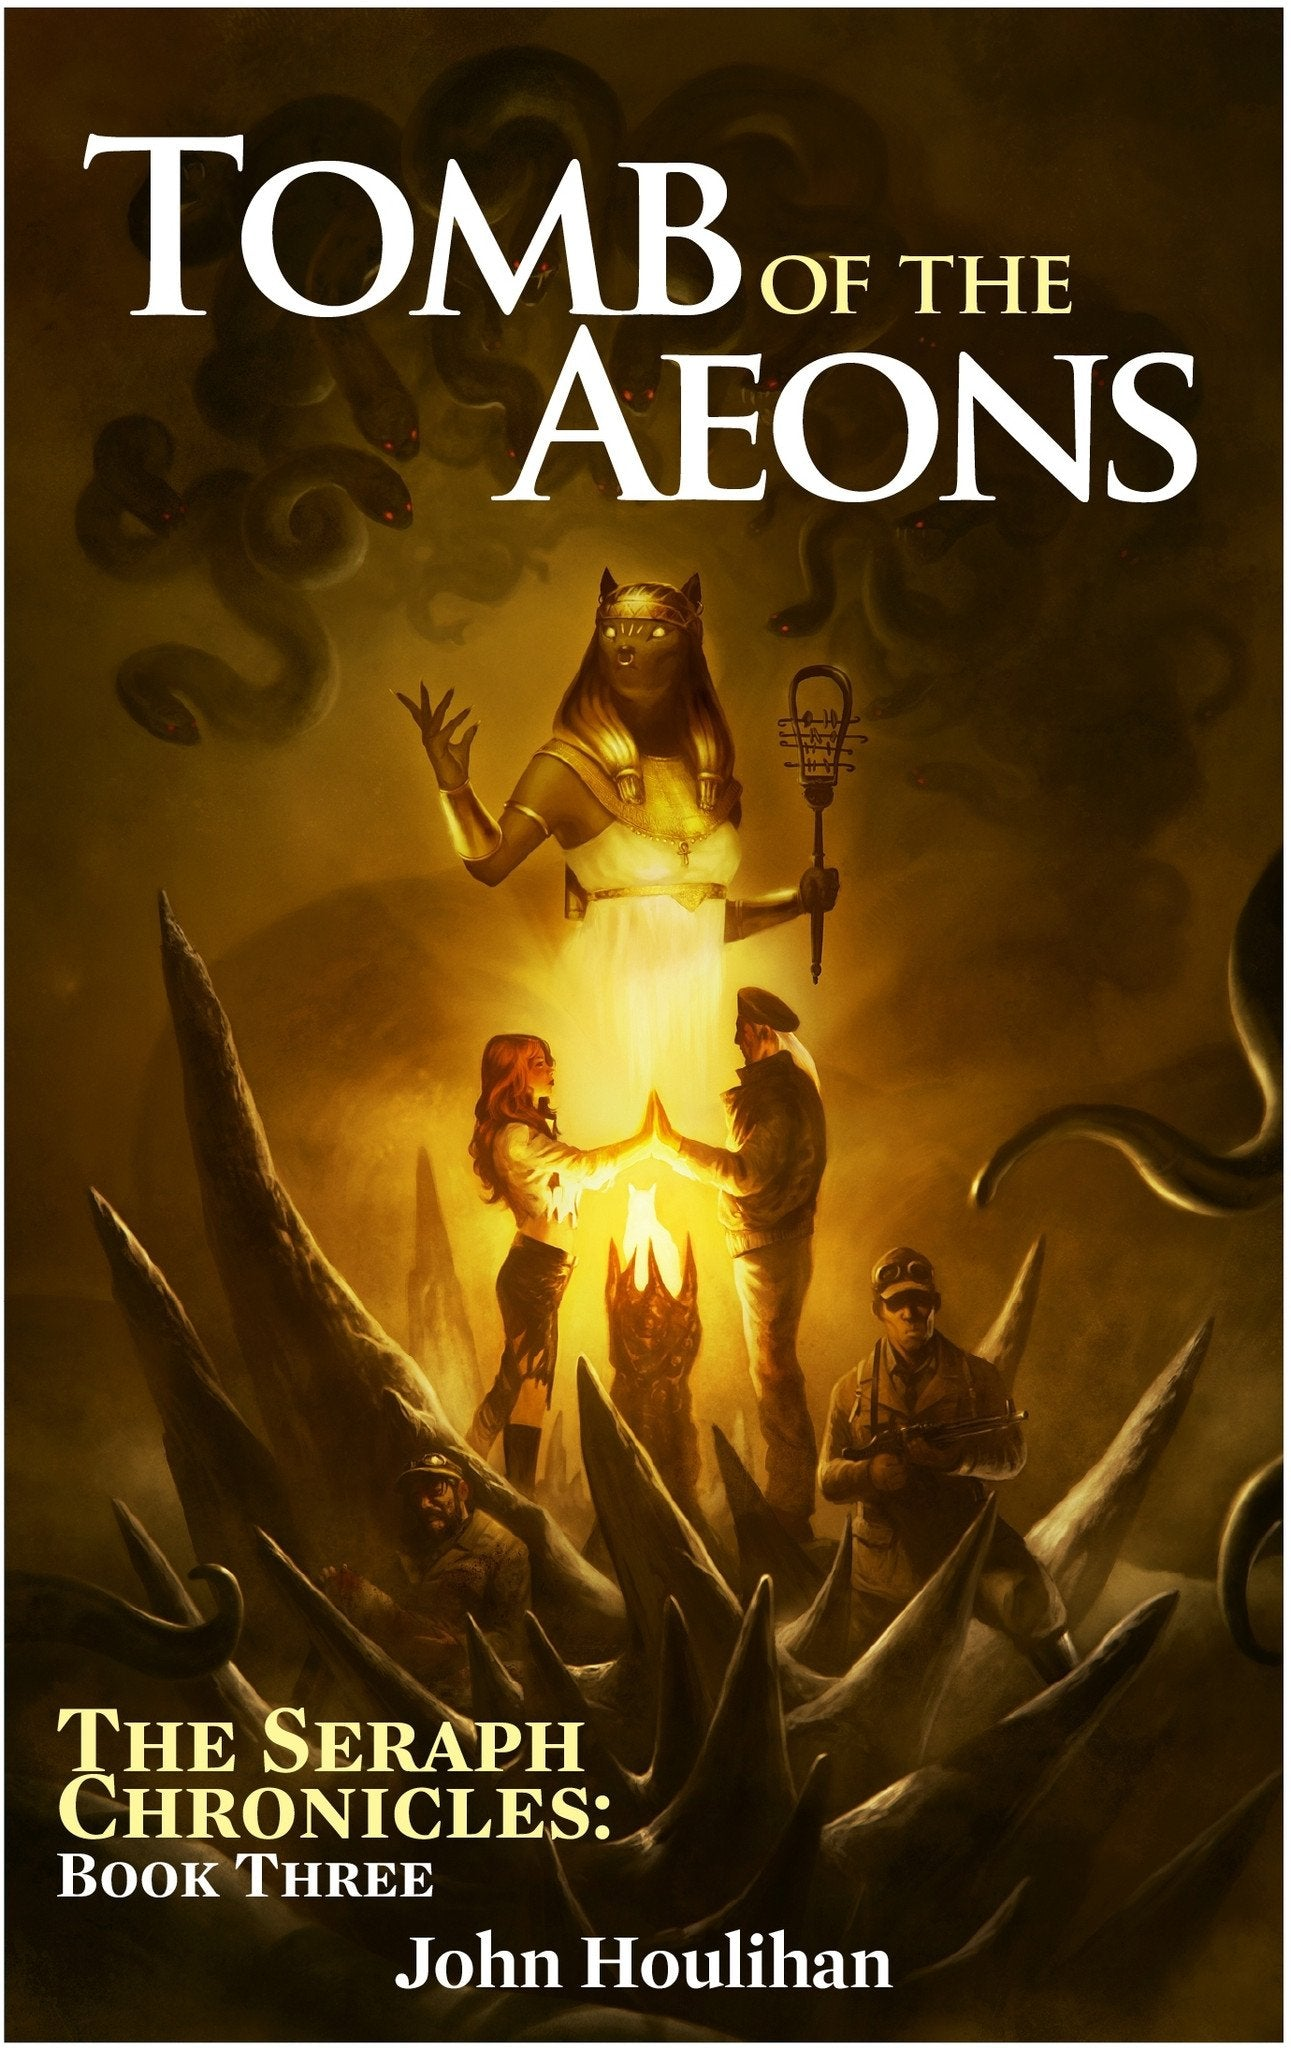 Achtung! Cthulhu Fiction: The Seraph Chronicles Vol 3. Tomb of the Aeons - PDF